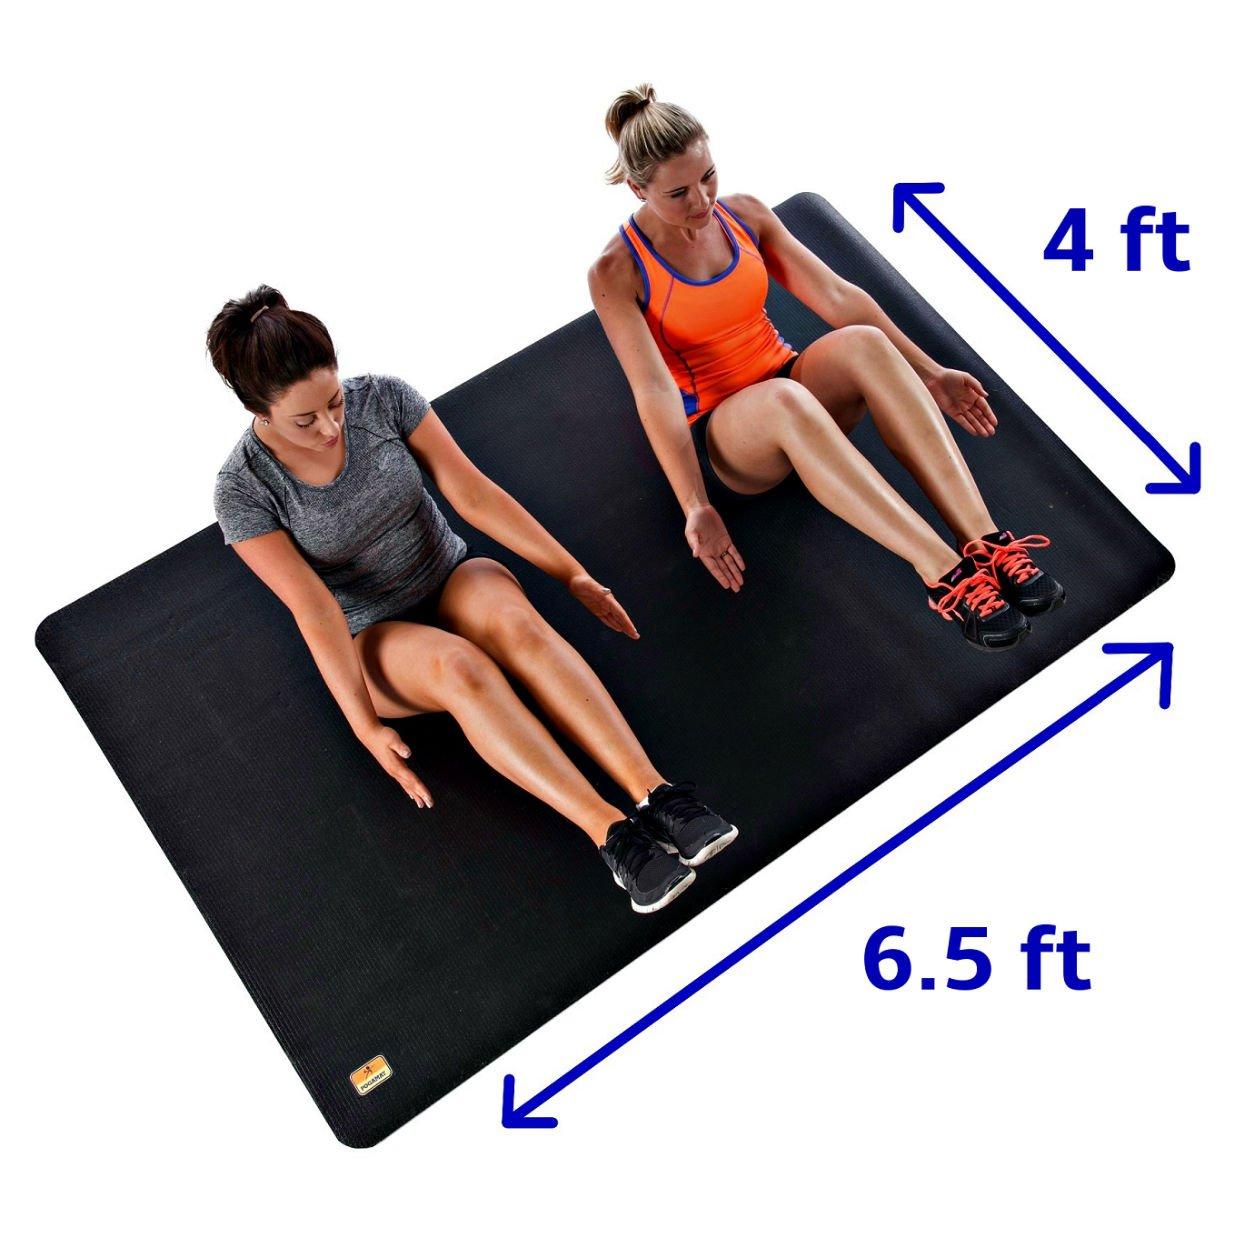 Pogamat Large Exercise Mat 78'' x 48'' x 1/4'' Thick (6.5' x 4') Anti-Tear Workout Mat And Yoga Mats. Perfect For All Types Of Exercises. Does Not ''Bunch Up'' While Working Out. Used WITH Or Without SHOES by Pogamat (Image #1)